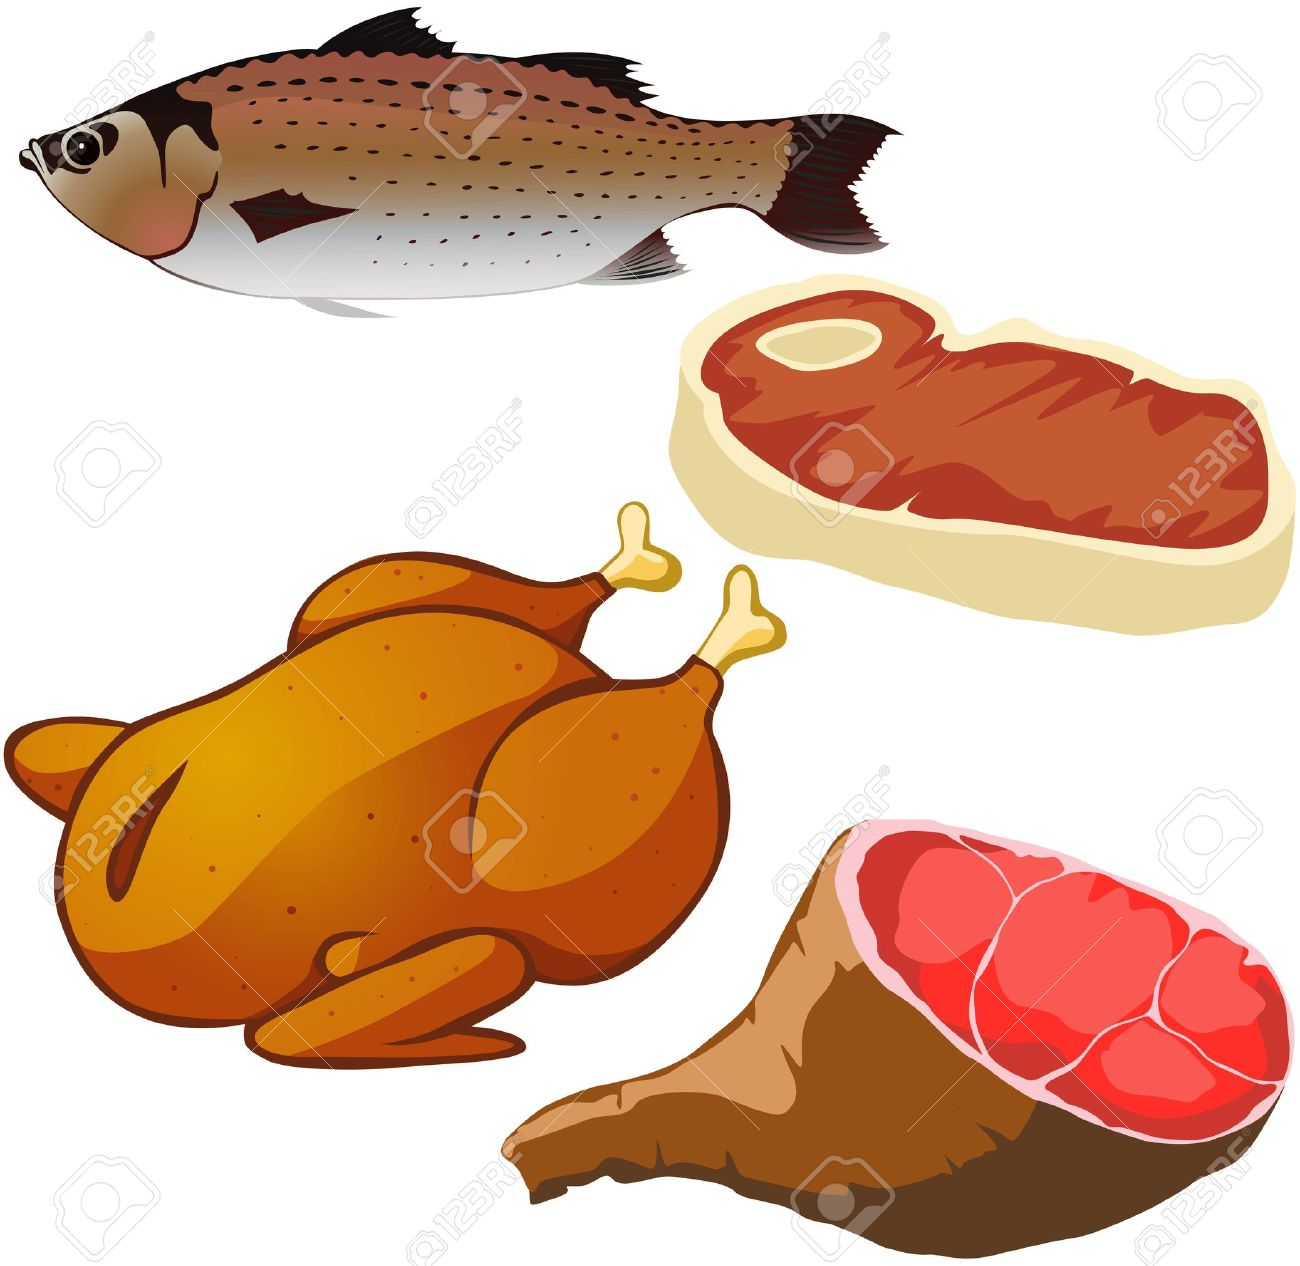 Fish meat clipart.